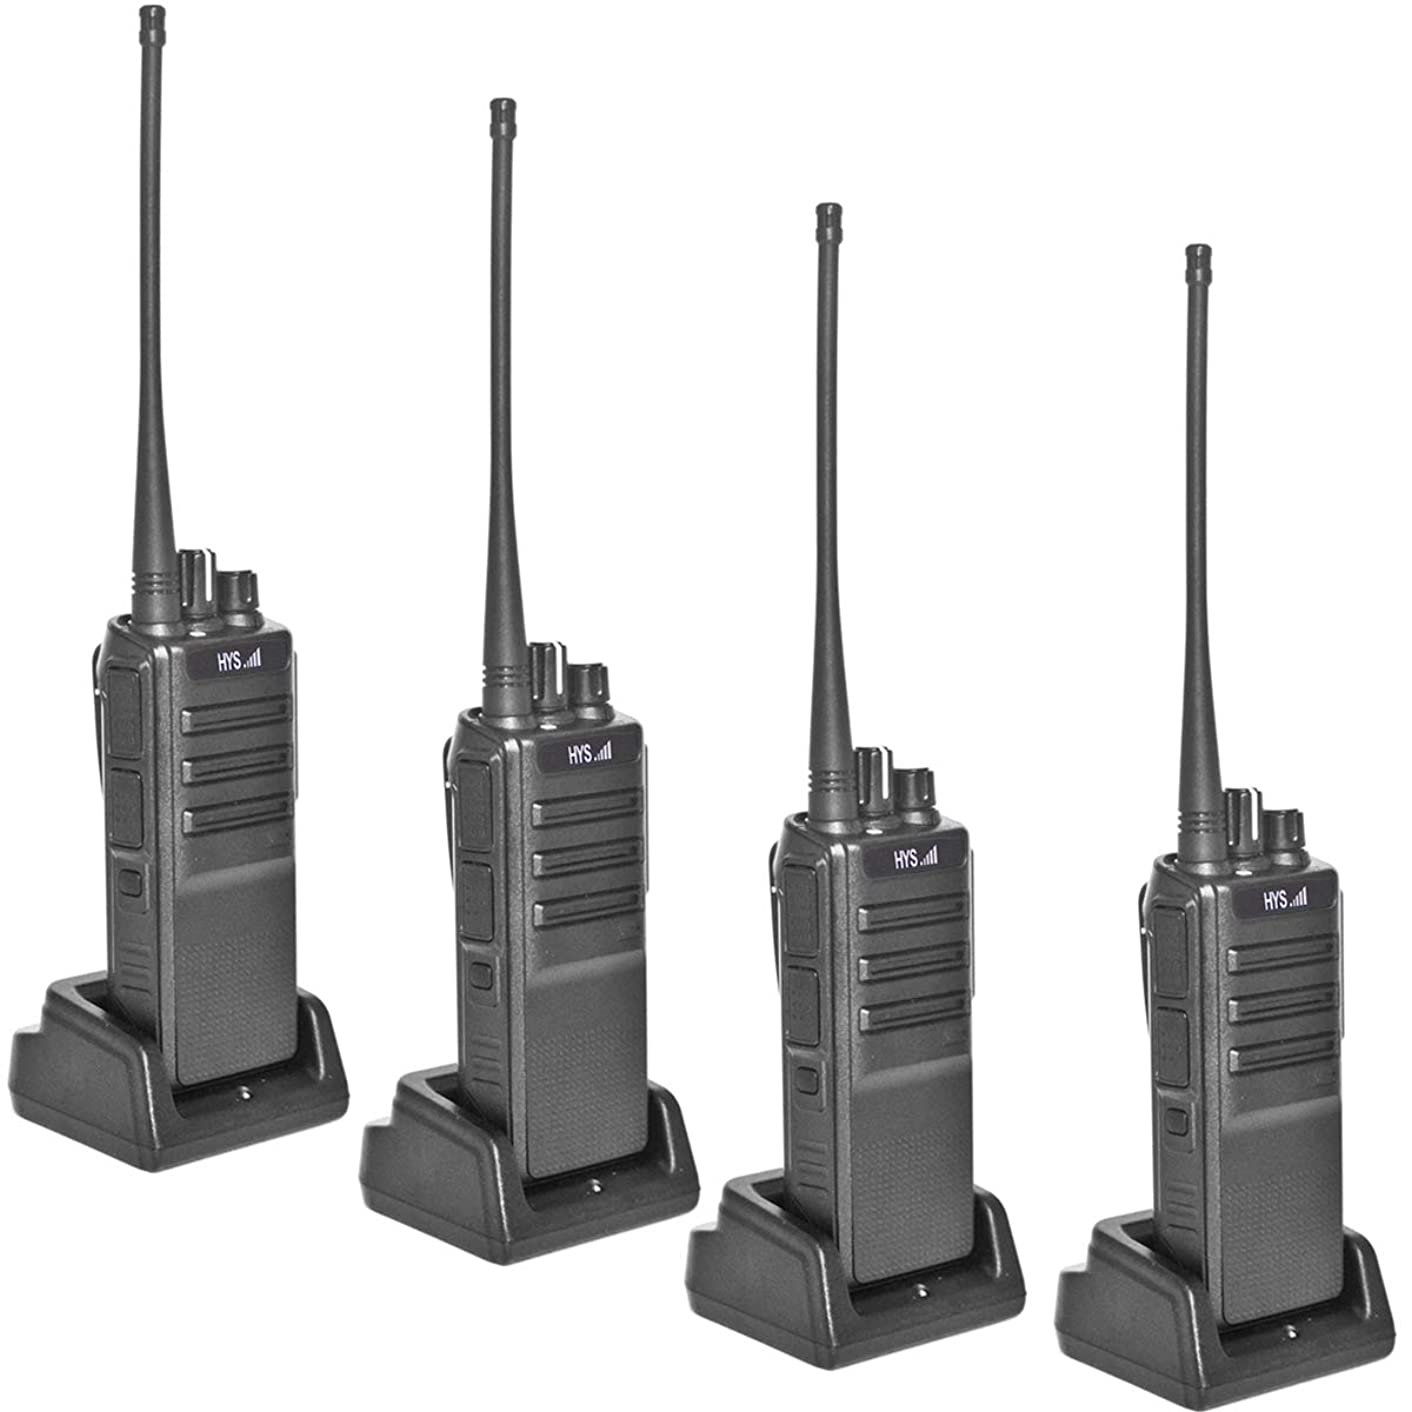 HYS TC-L10U 2 Way Radios Long Range Rechargeable FRS Two Way Radio Vox Security 10W Walkie Talkies with 3000mAh Battery and USB Programming Cable(4Pack)